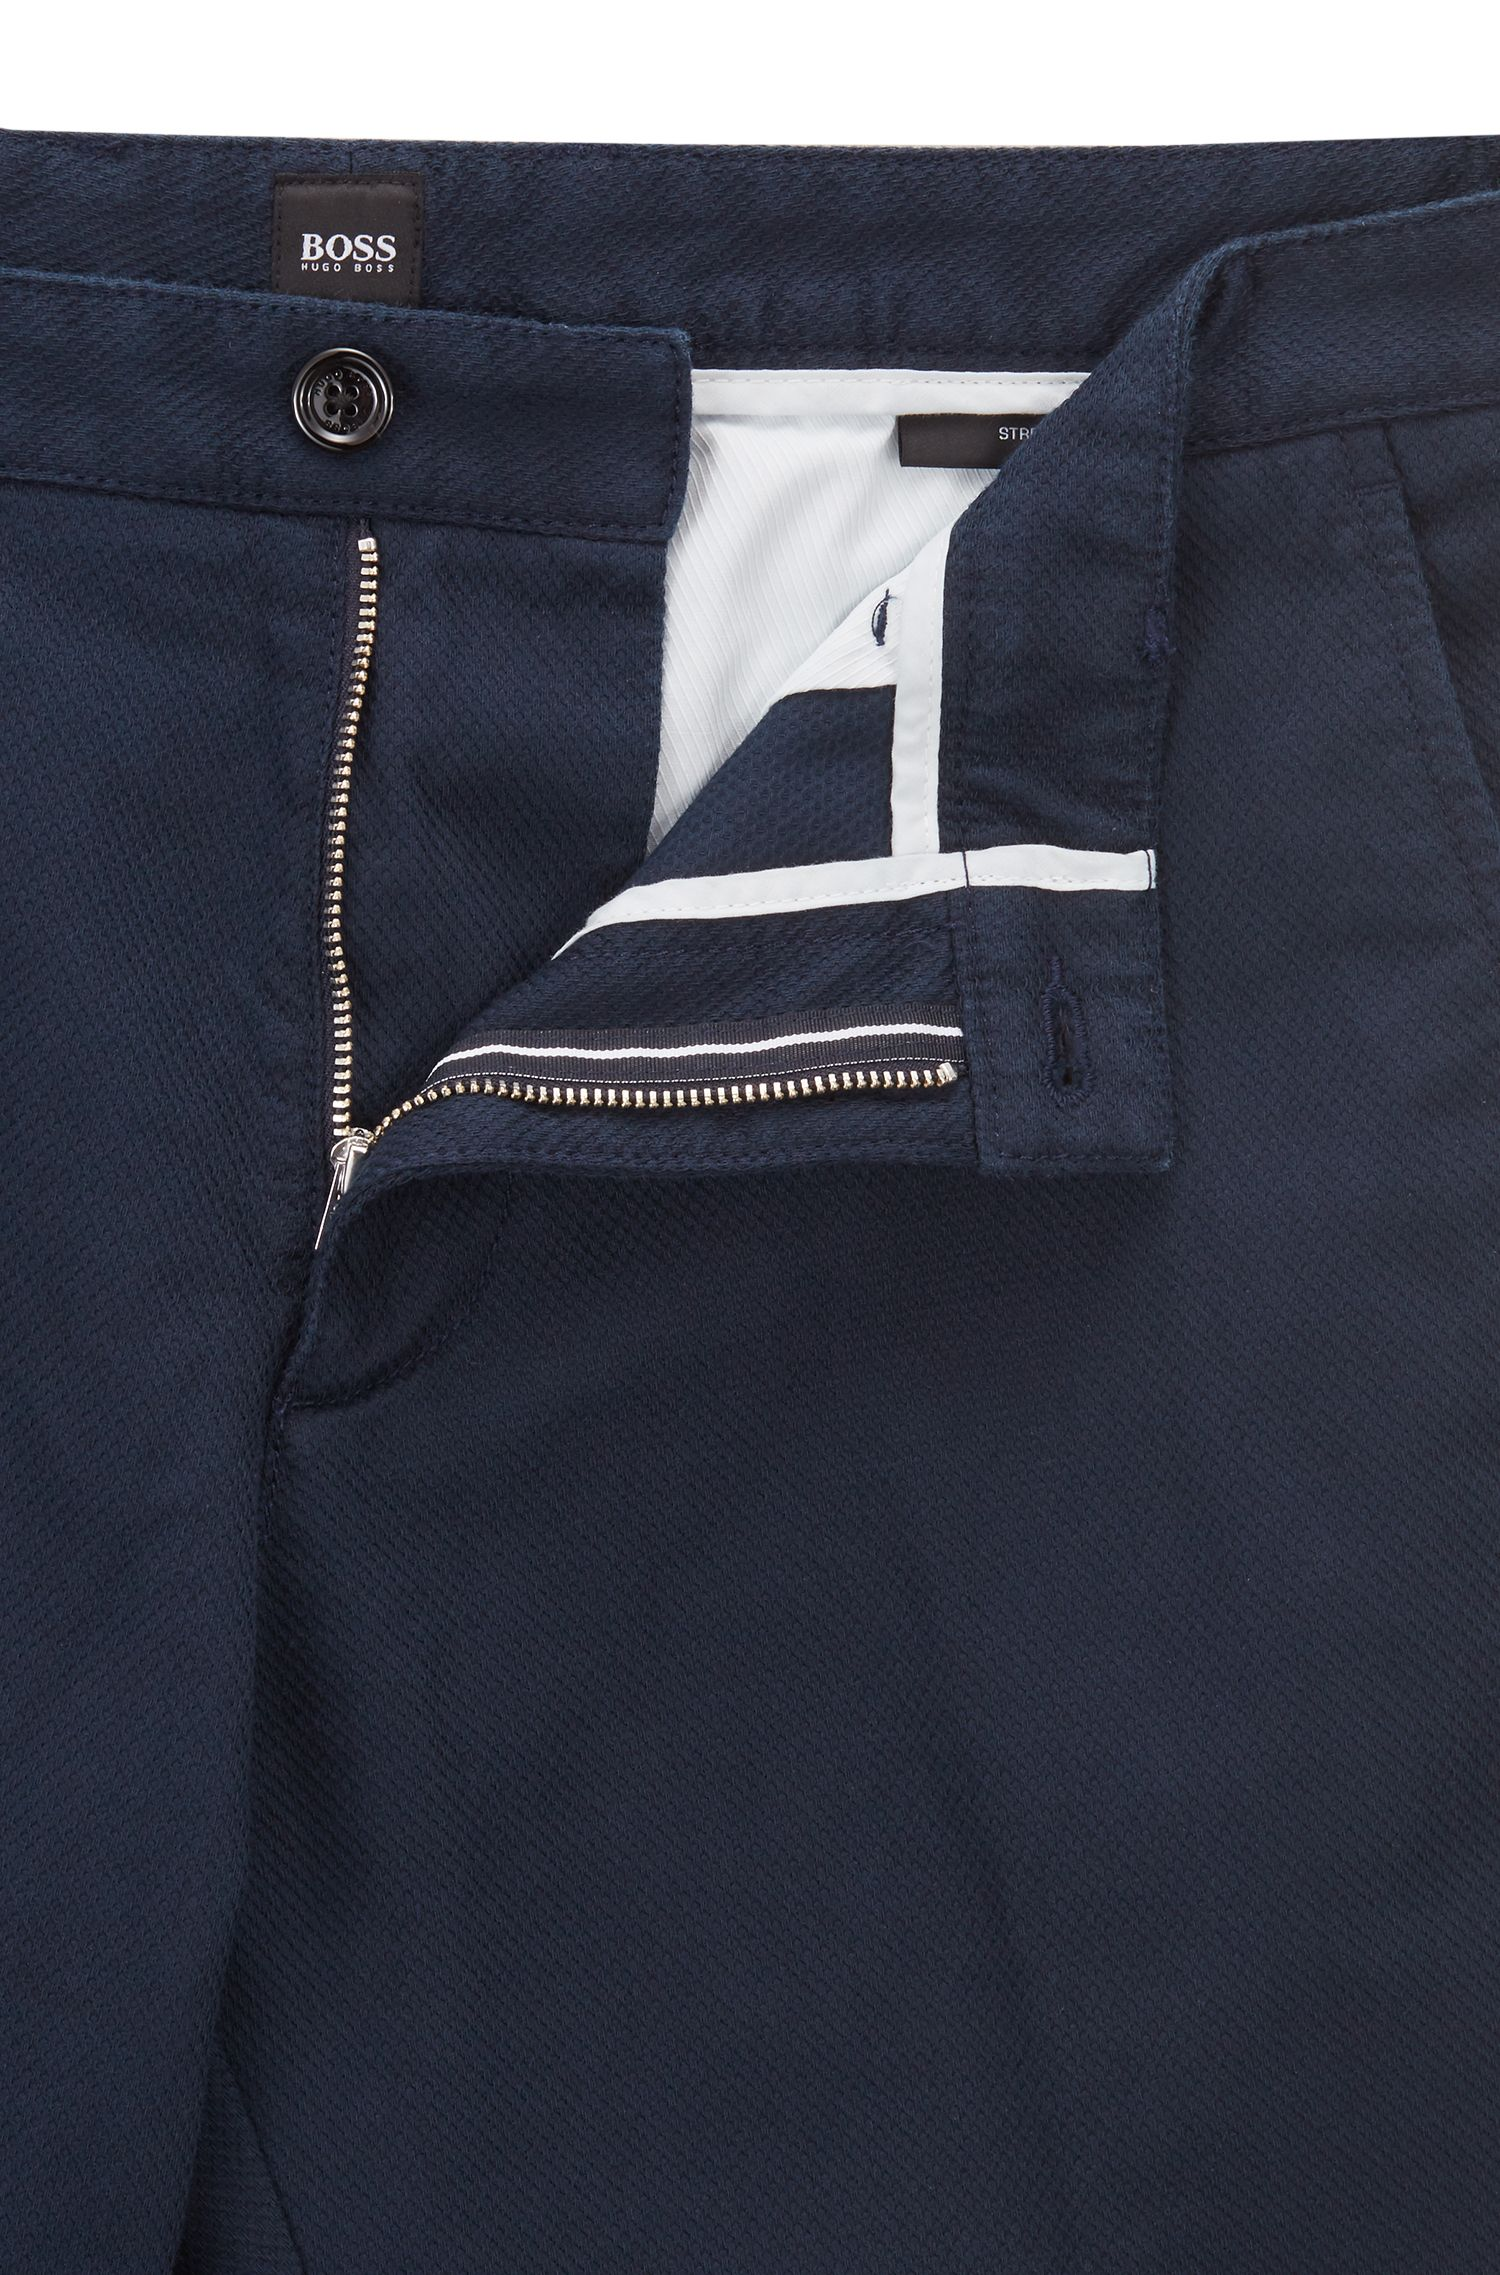 Regular-fit chinos in structured stretch cotton, Dark Blue